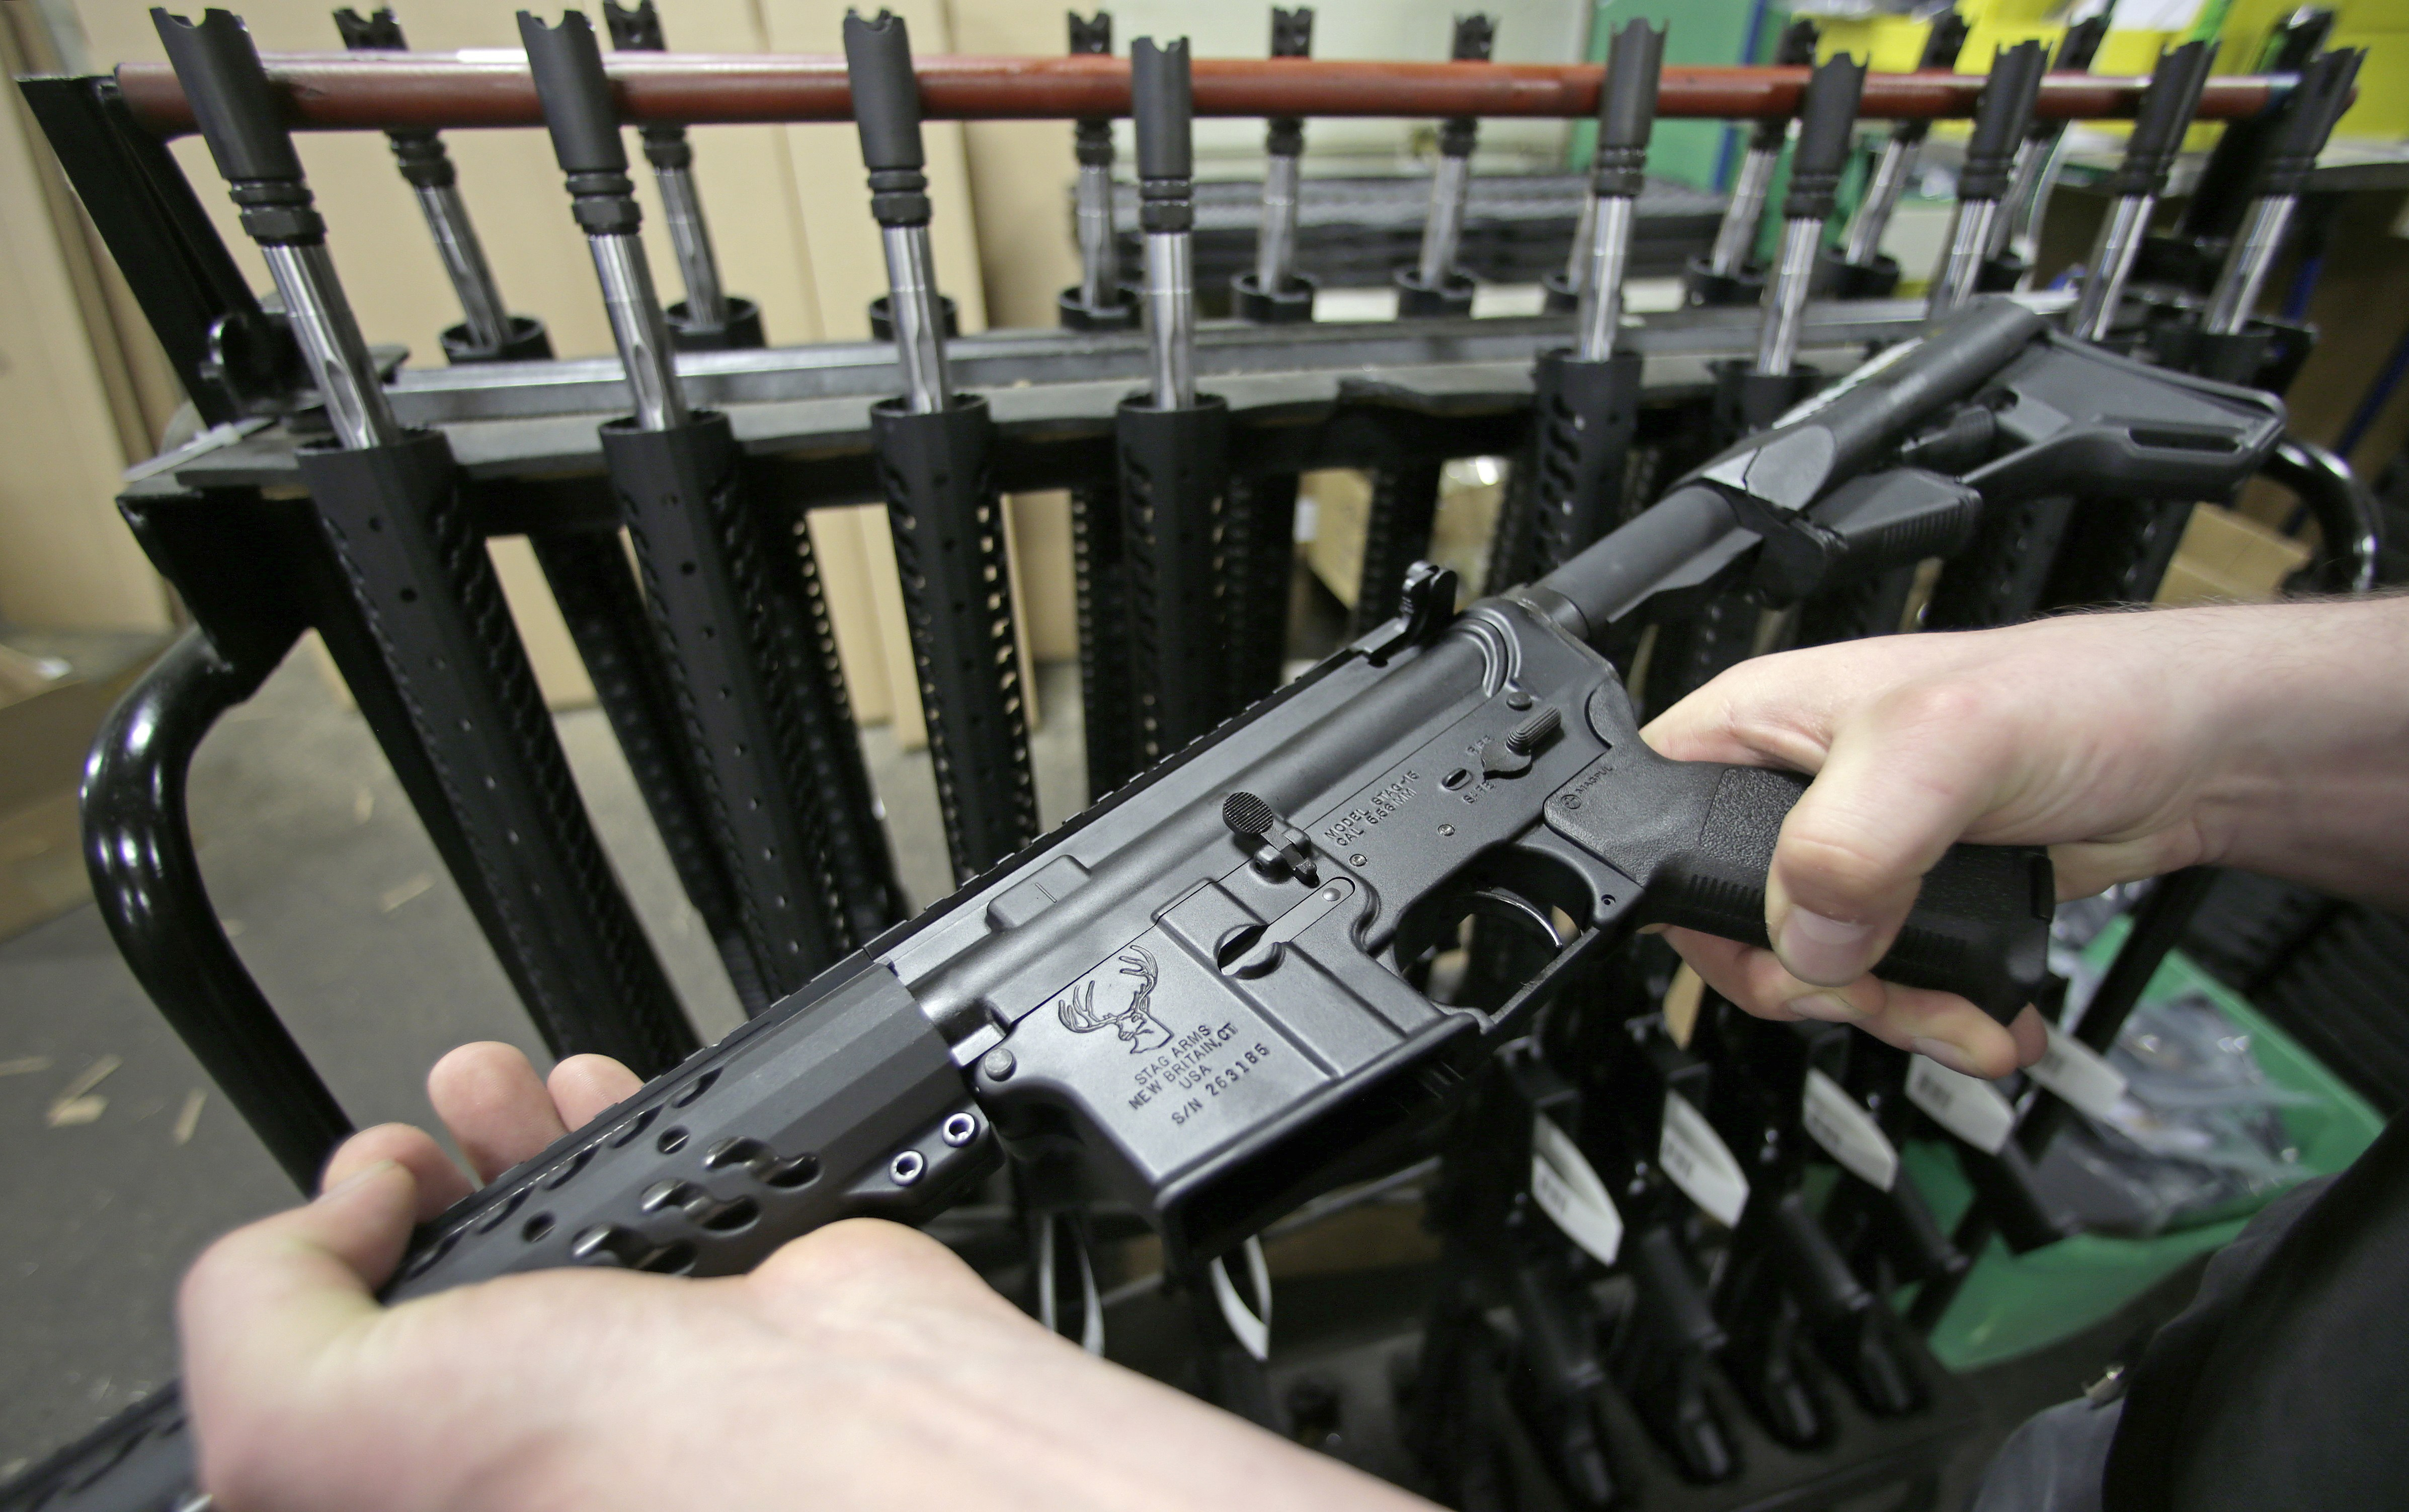 <p>Researchers suggest that new, more powerful weapons are part of the reason gunshot wounds are more deadly. Above, anewly assembled AR-15 rifle at Stag Arms in New Britain, Conn.</p>